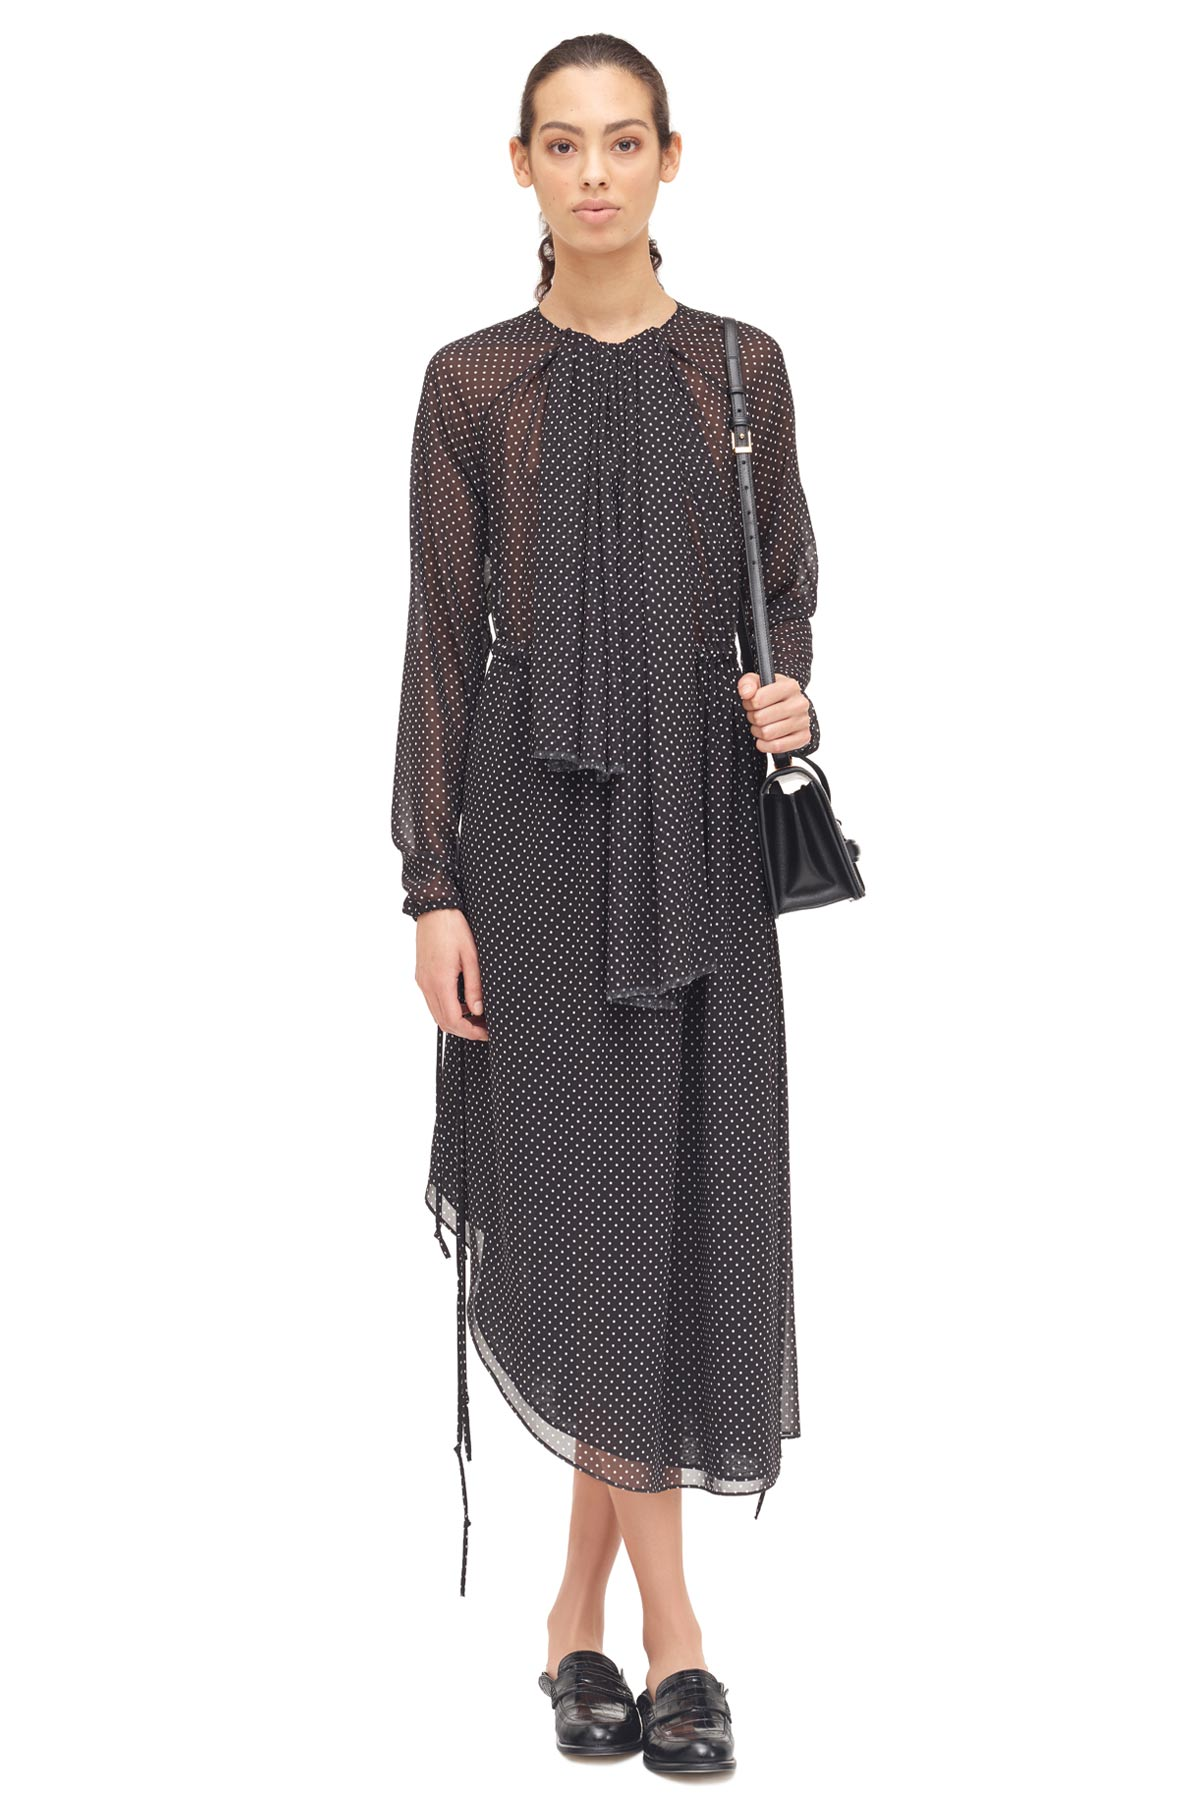 LOEWE Lavalliere Dress Black/White front